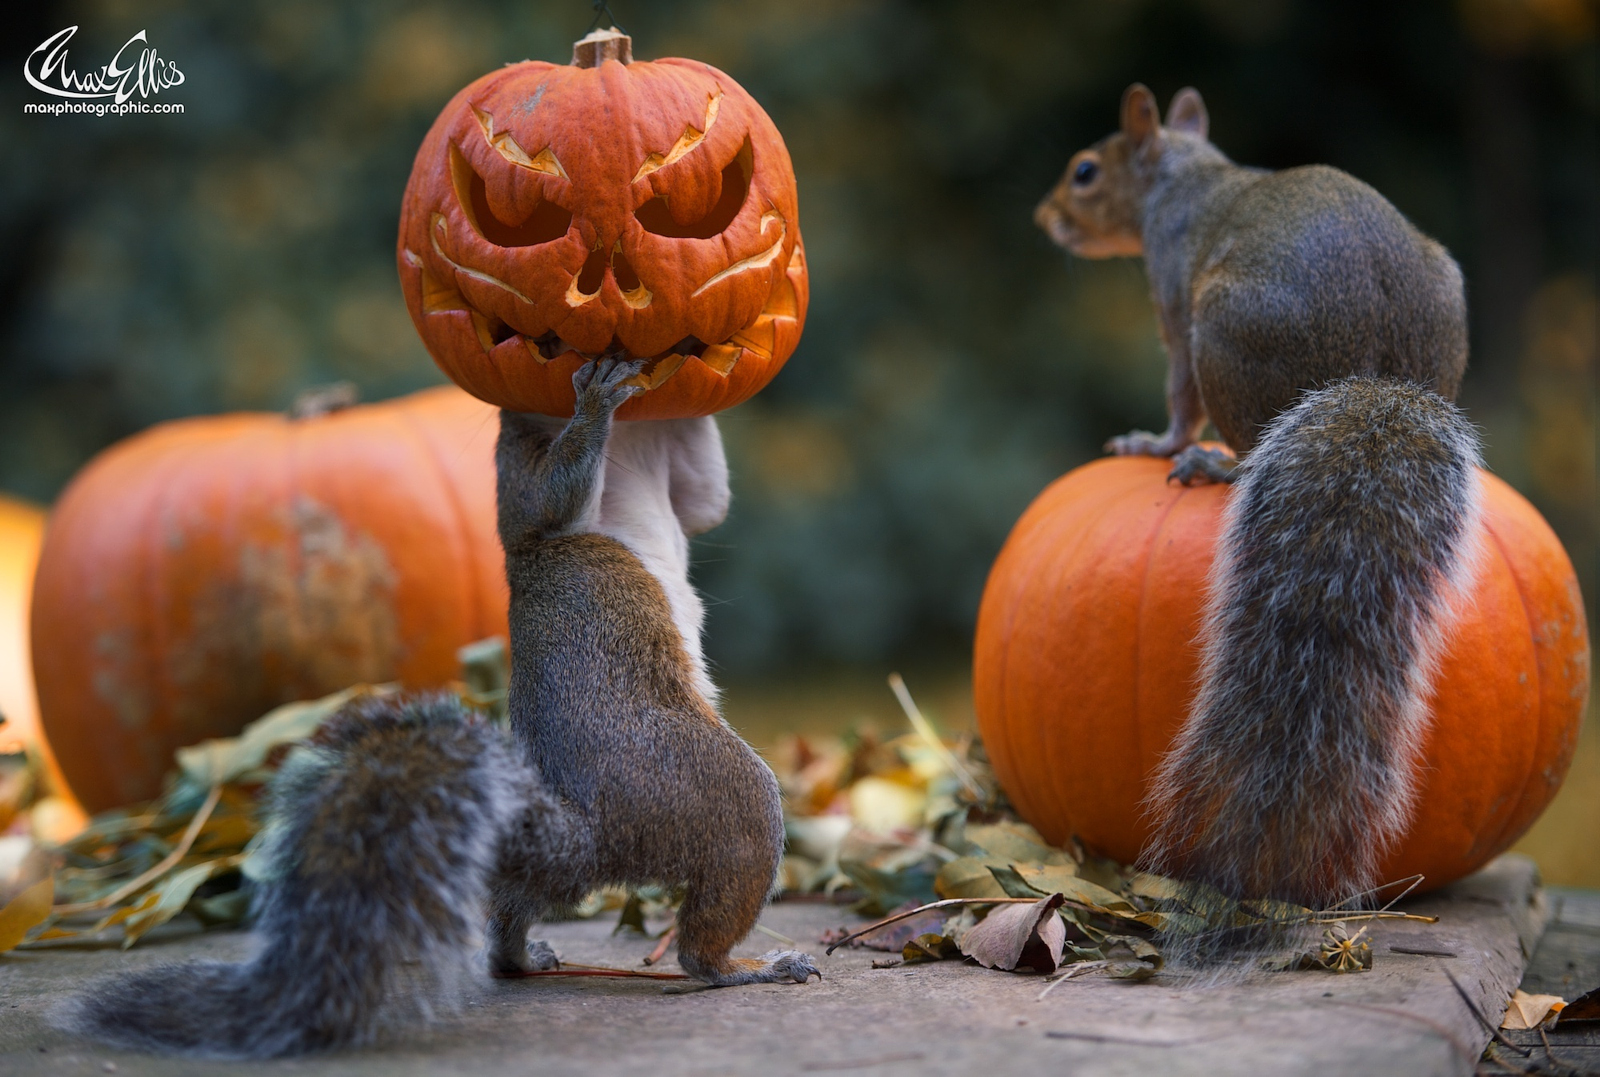 The Story Behind the Most Popular Halloween Photo on 500px